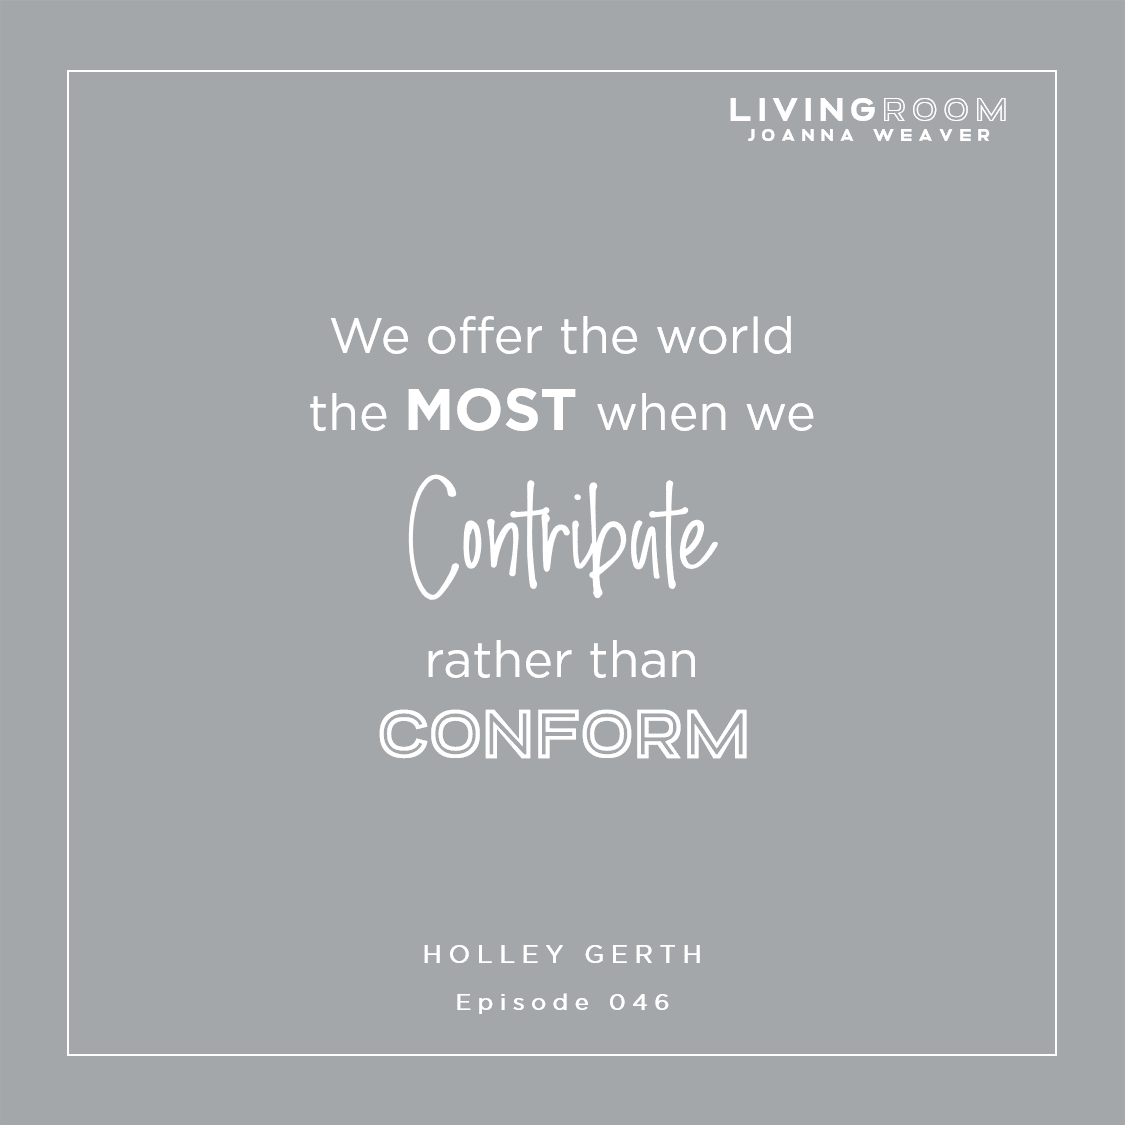 """We offer the world the most when we contribute rather than conform"" - Holley Gerth - The Living Room Podcast - Ep. 046"